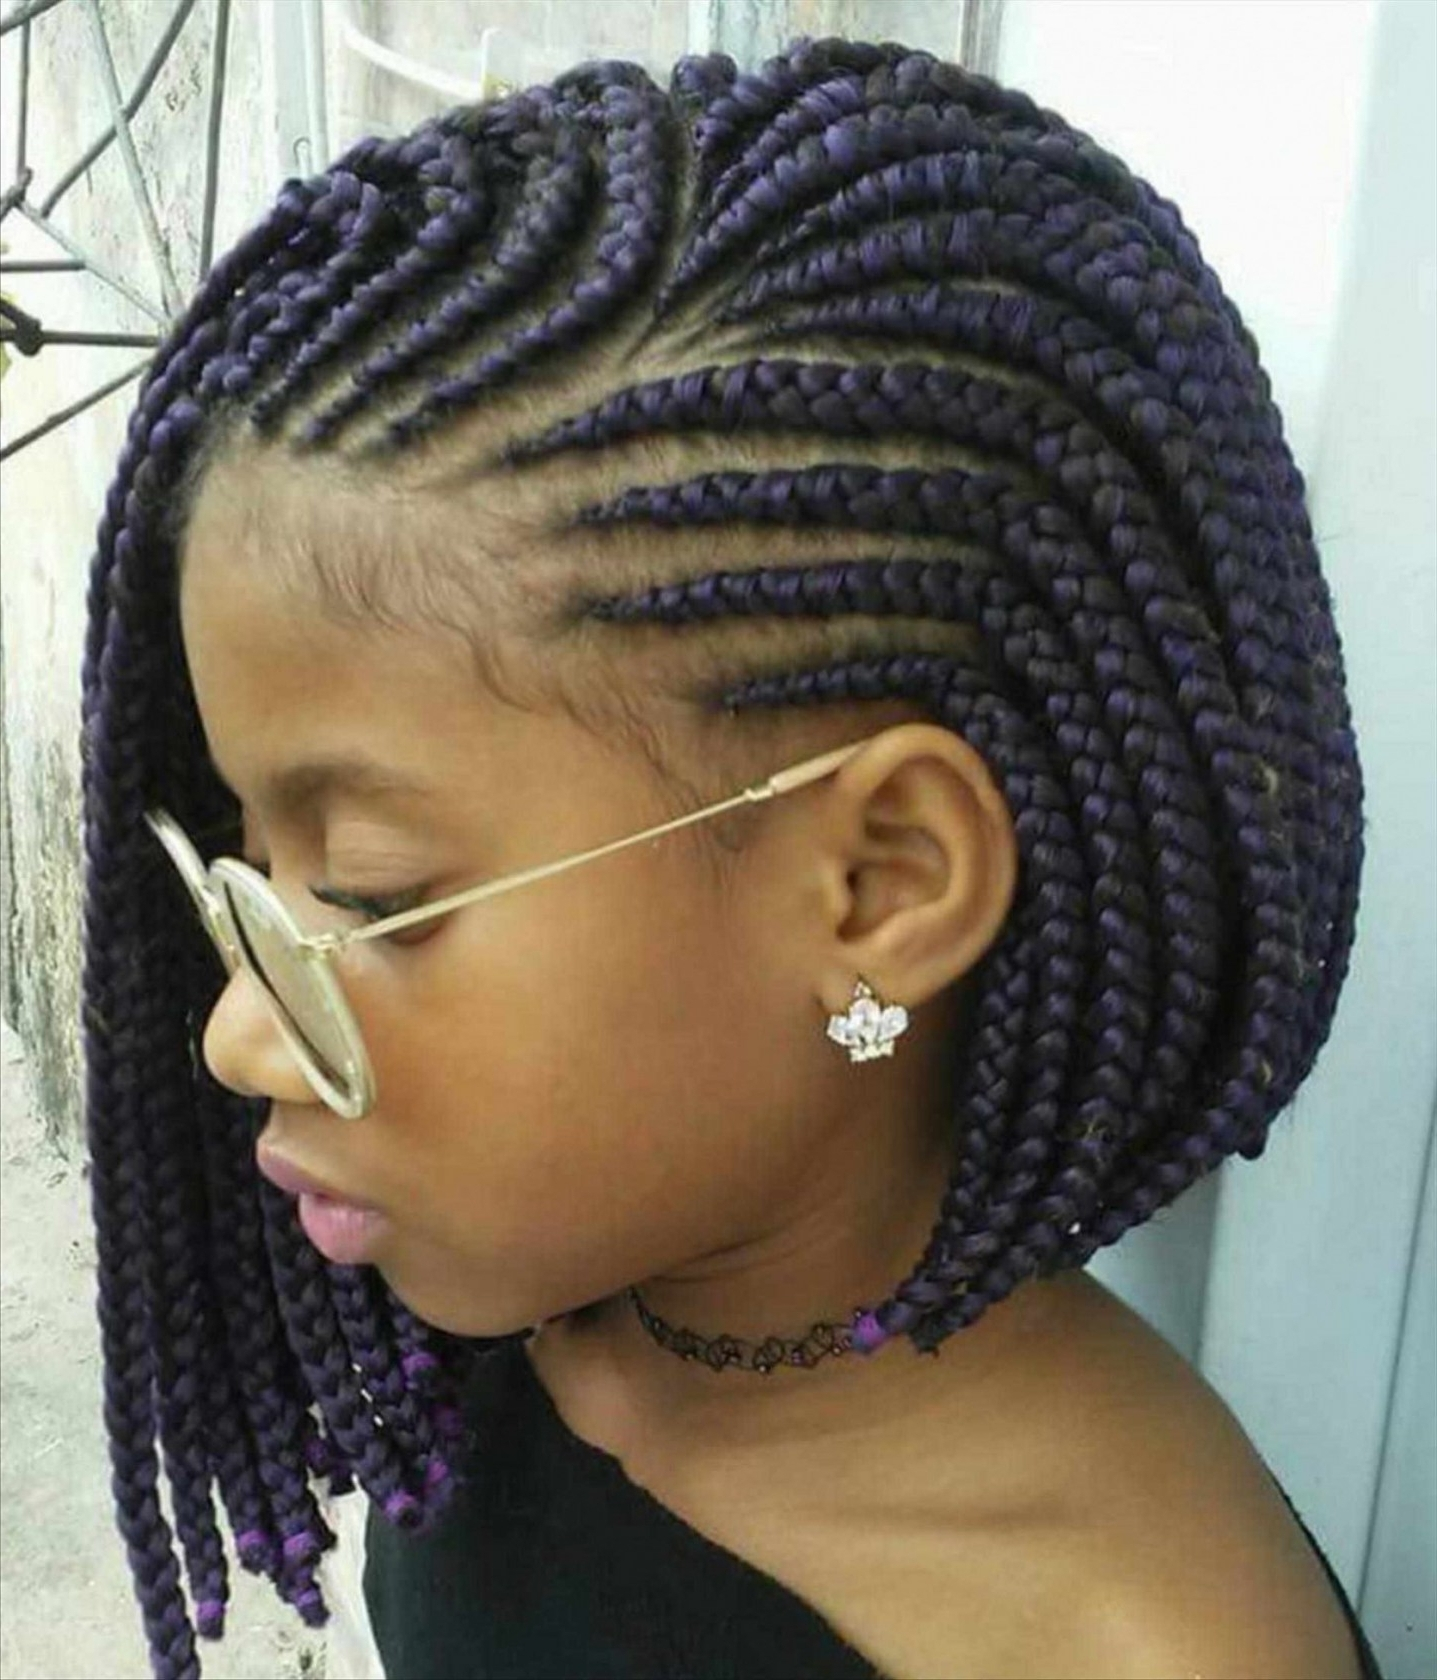 Inspiring African Black Kids Braids Hairstyles Braided For Pict Throughout Current Cornrows African Hairstyles (View 9 of 15)